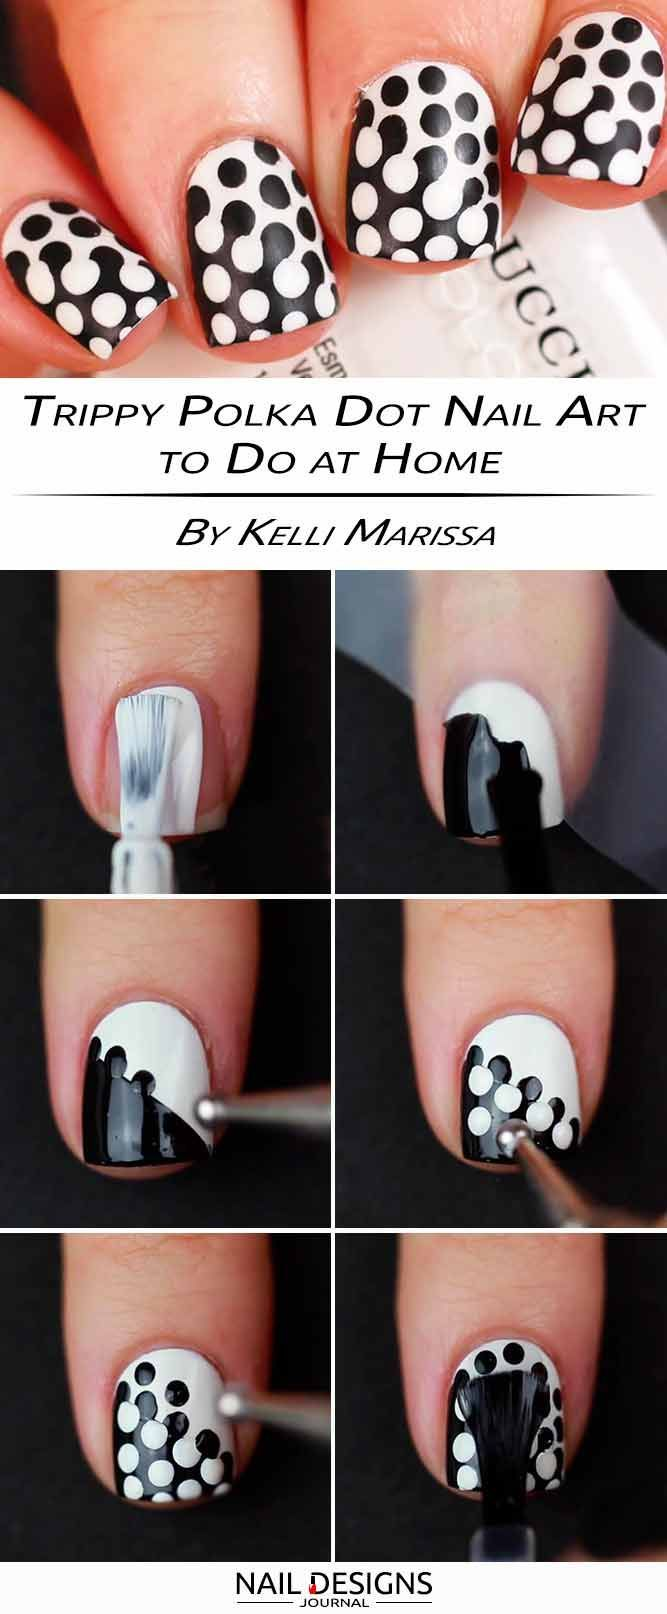 20 Easy Tutorials How To Do Cute Nails Designs To Up The Nail Game In 2020 Diy Nail Designs Nail Designs Dot Nail Art